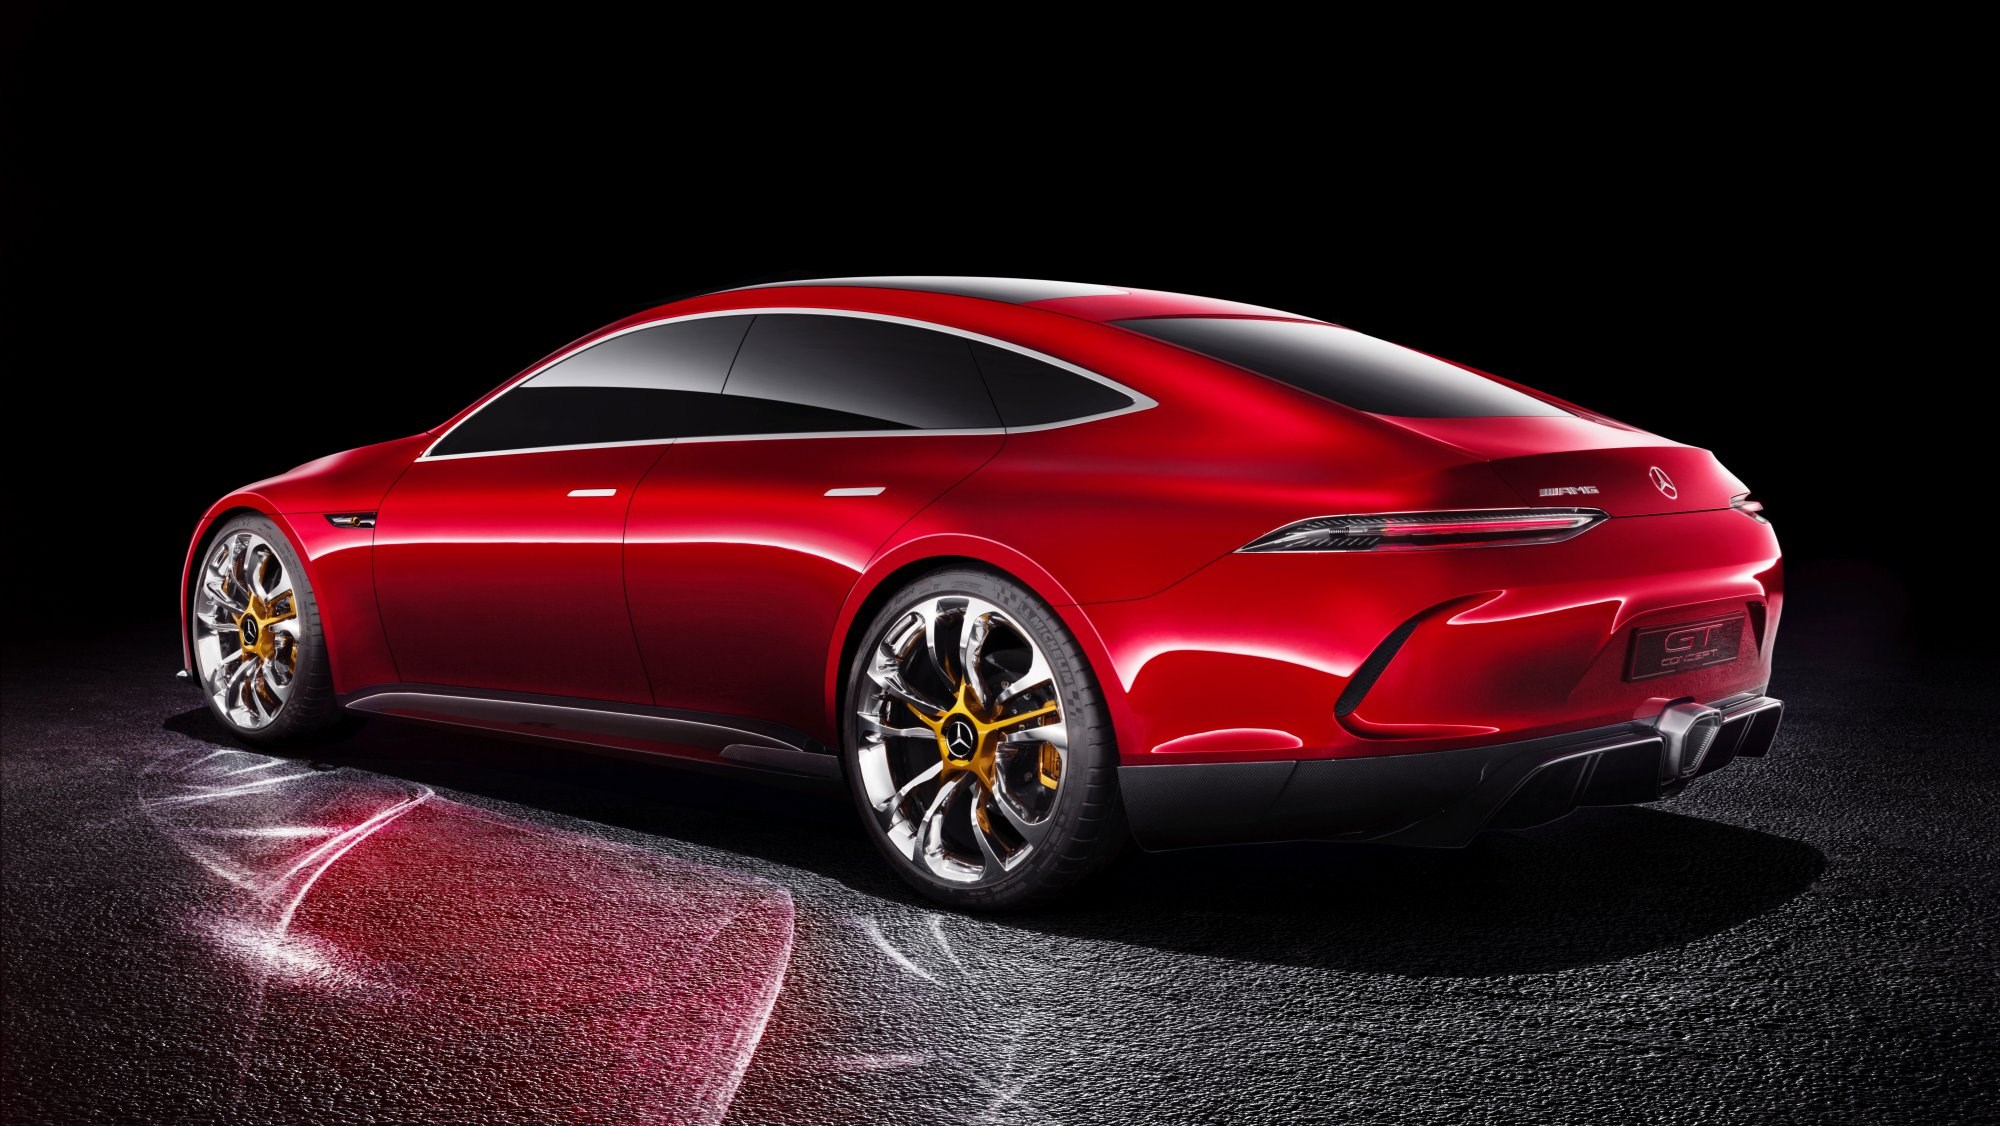 Mercedes-AMG GT Concept, Taking On The Best Supersports Saloons Thumbnail